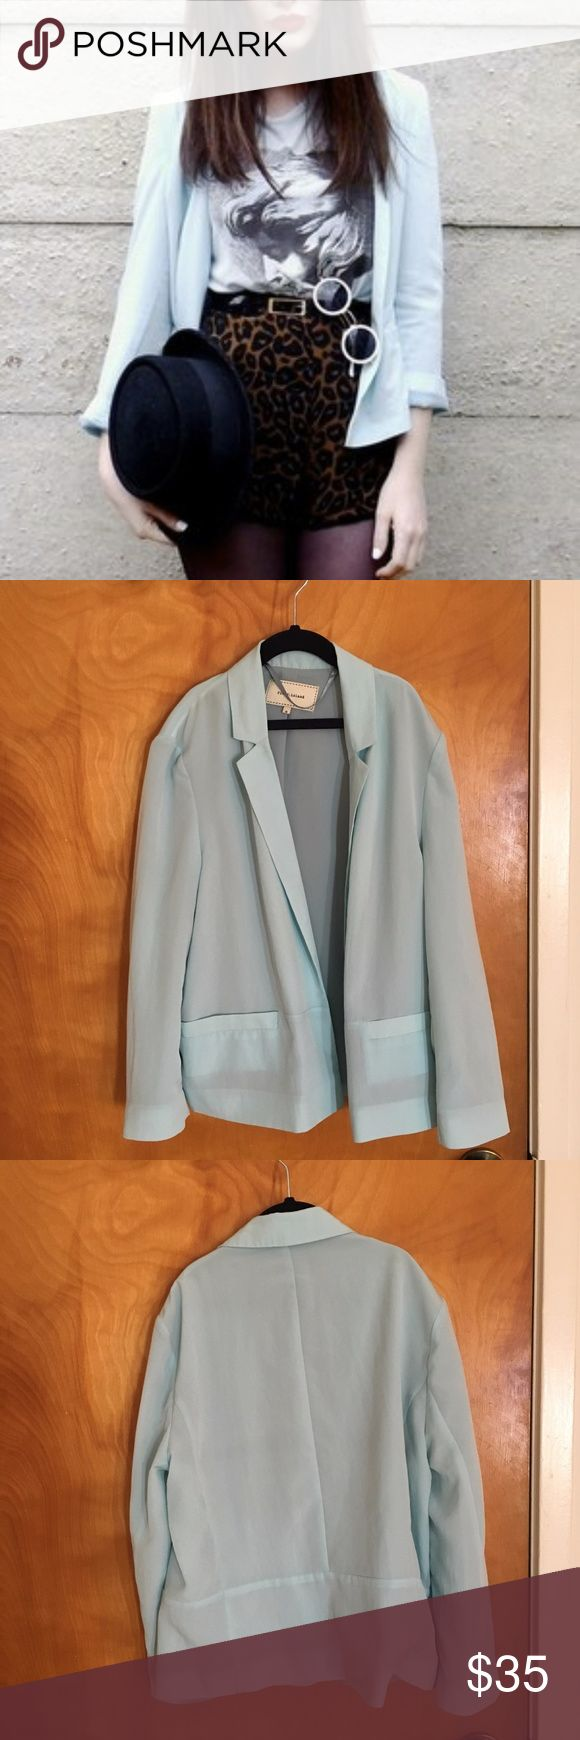 River Island Light Blue 3/4 Sleeve Cropped Blazer Light enough for summer, to dress up any outfit.  Looks super cool over a dress, or with a cool tee, shorts and tights or leggings.  Pair with this Casanova tee, which I also have for sale. River Island Jackets & Coats Blazers